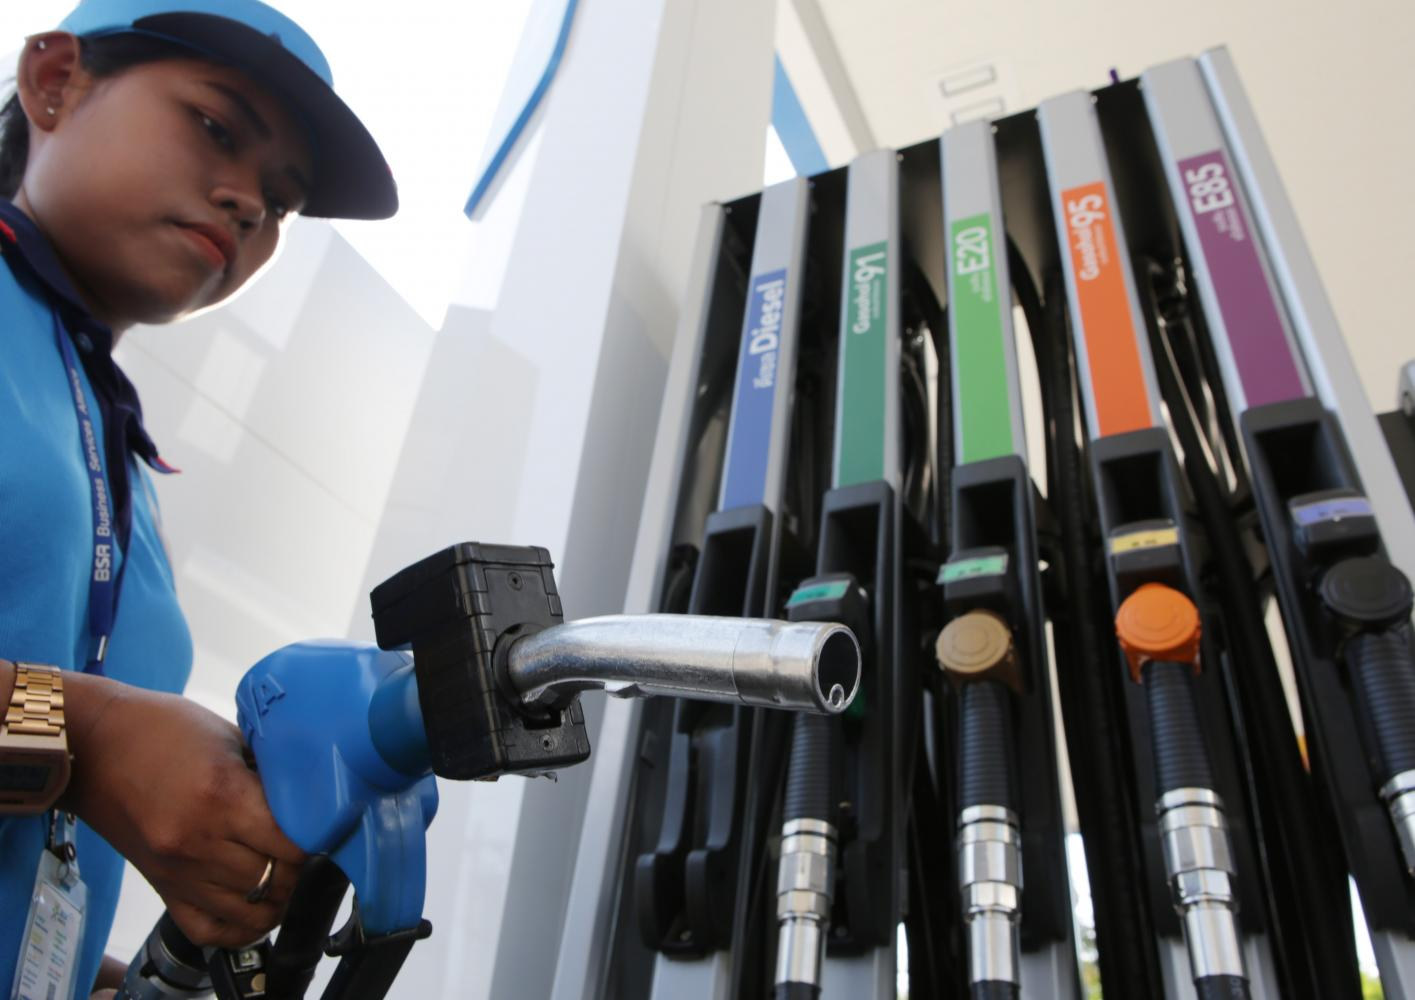 The fundamental diesel at local petrol stations is now B10. The energy minister plans to set up regulations for B100 futures to stablise prices of palm oil output. Apichit Jinakul